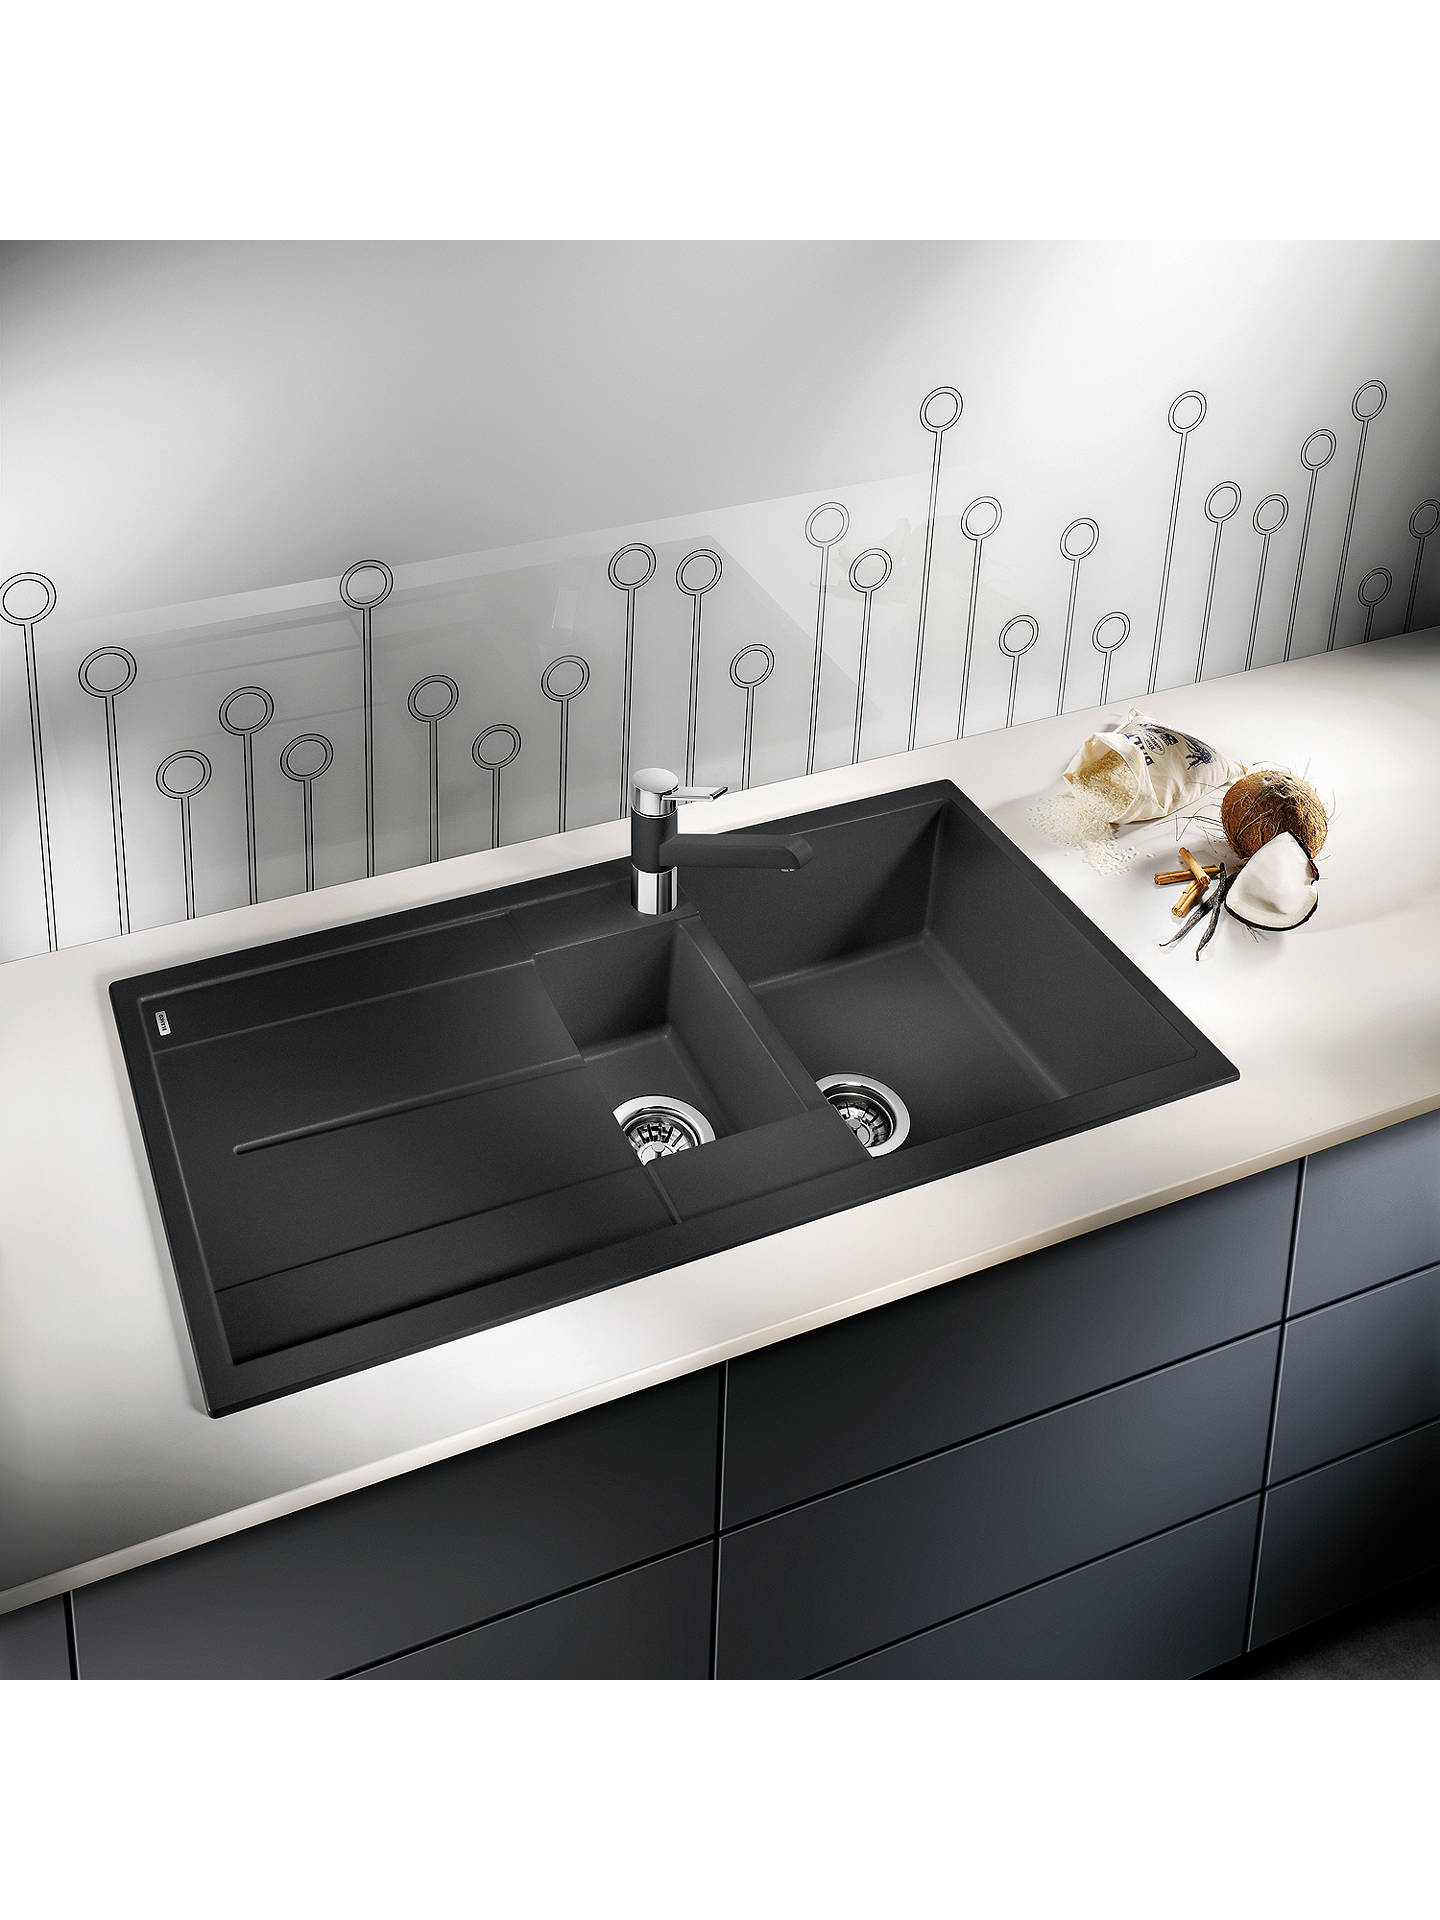 Buy Blanco Metra 6 S 1.5 Composite Granite Kitchen Sink with Reversible Bowl, Alu Metallic Online at johnlewis.com